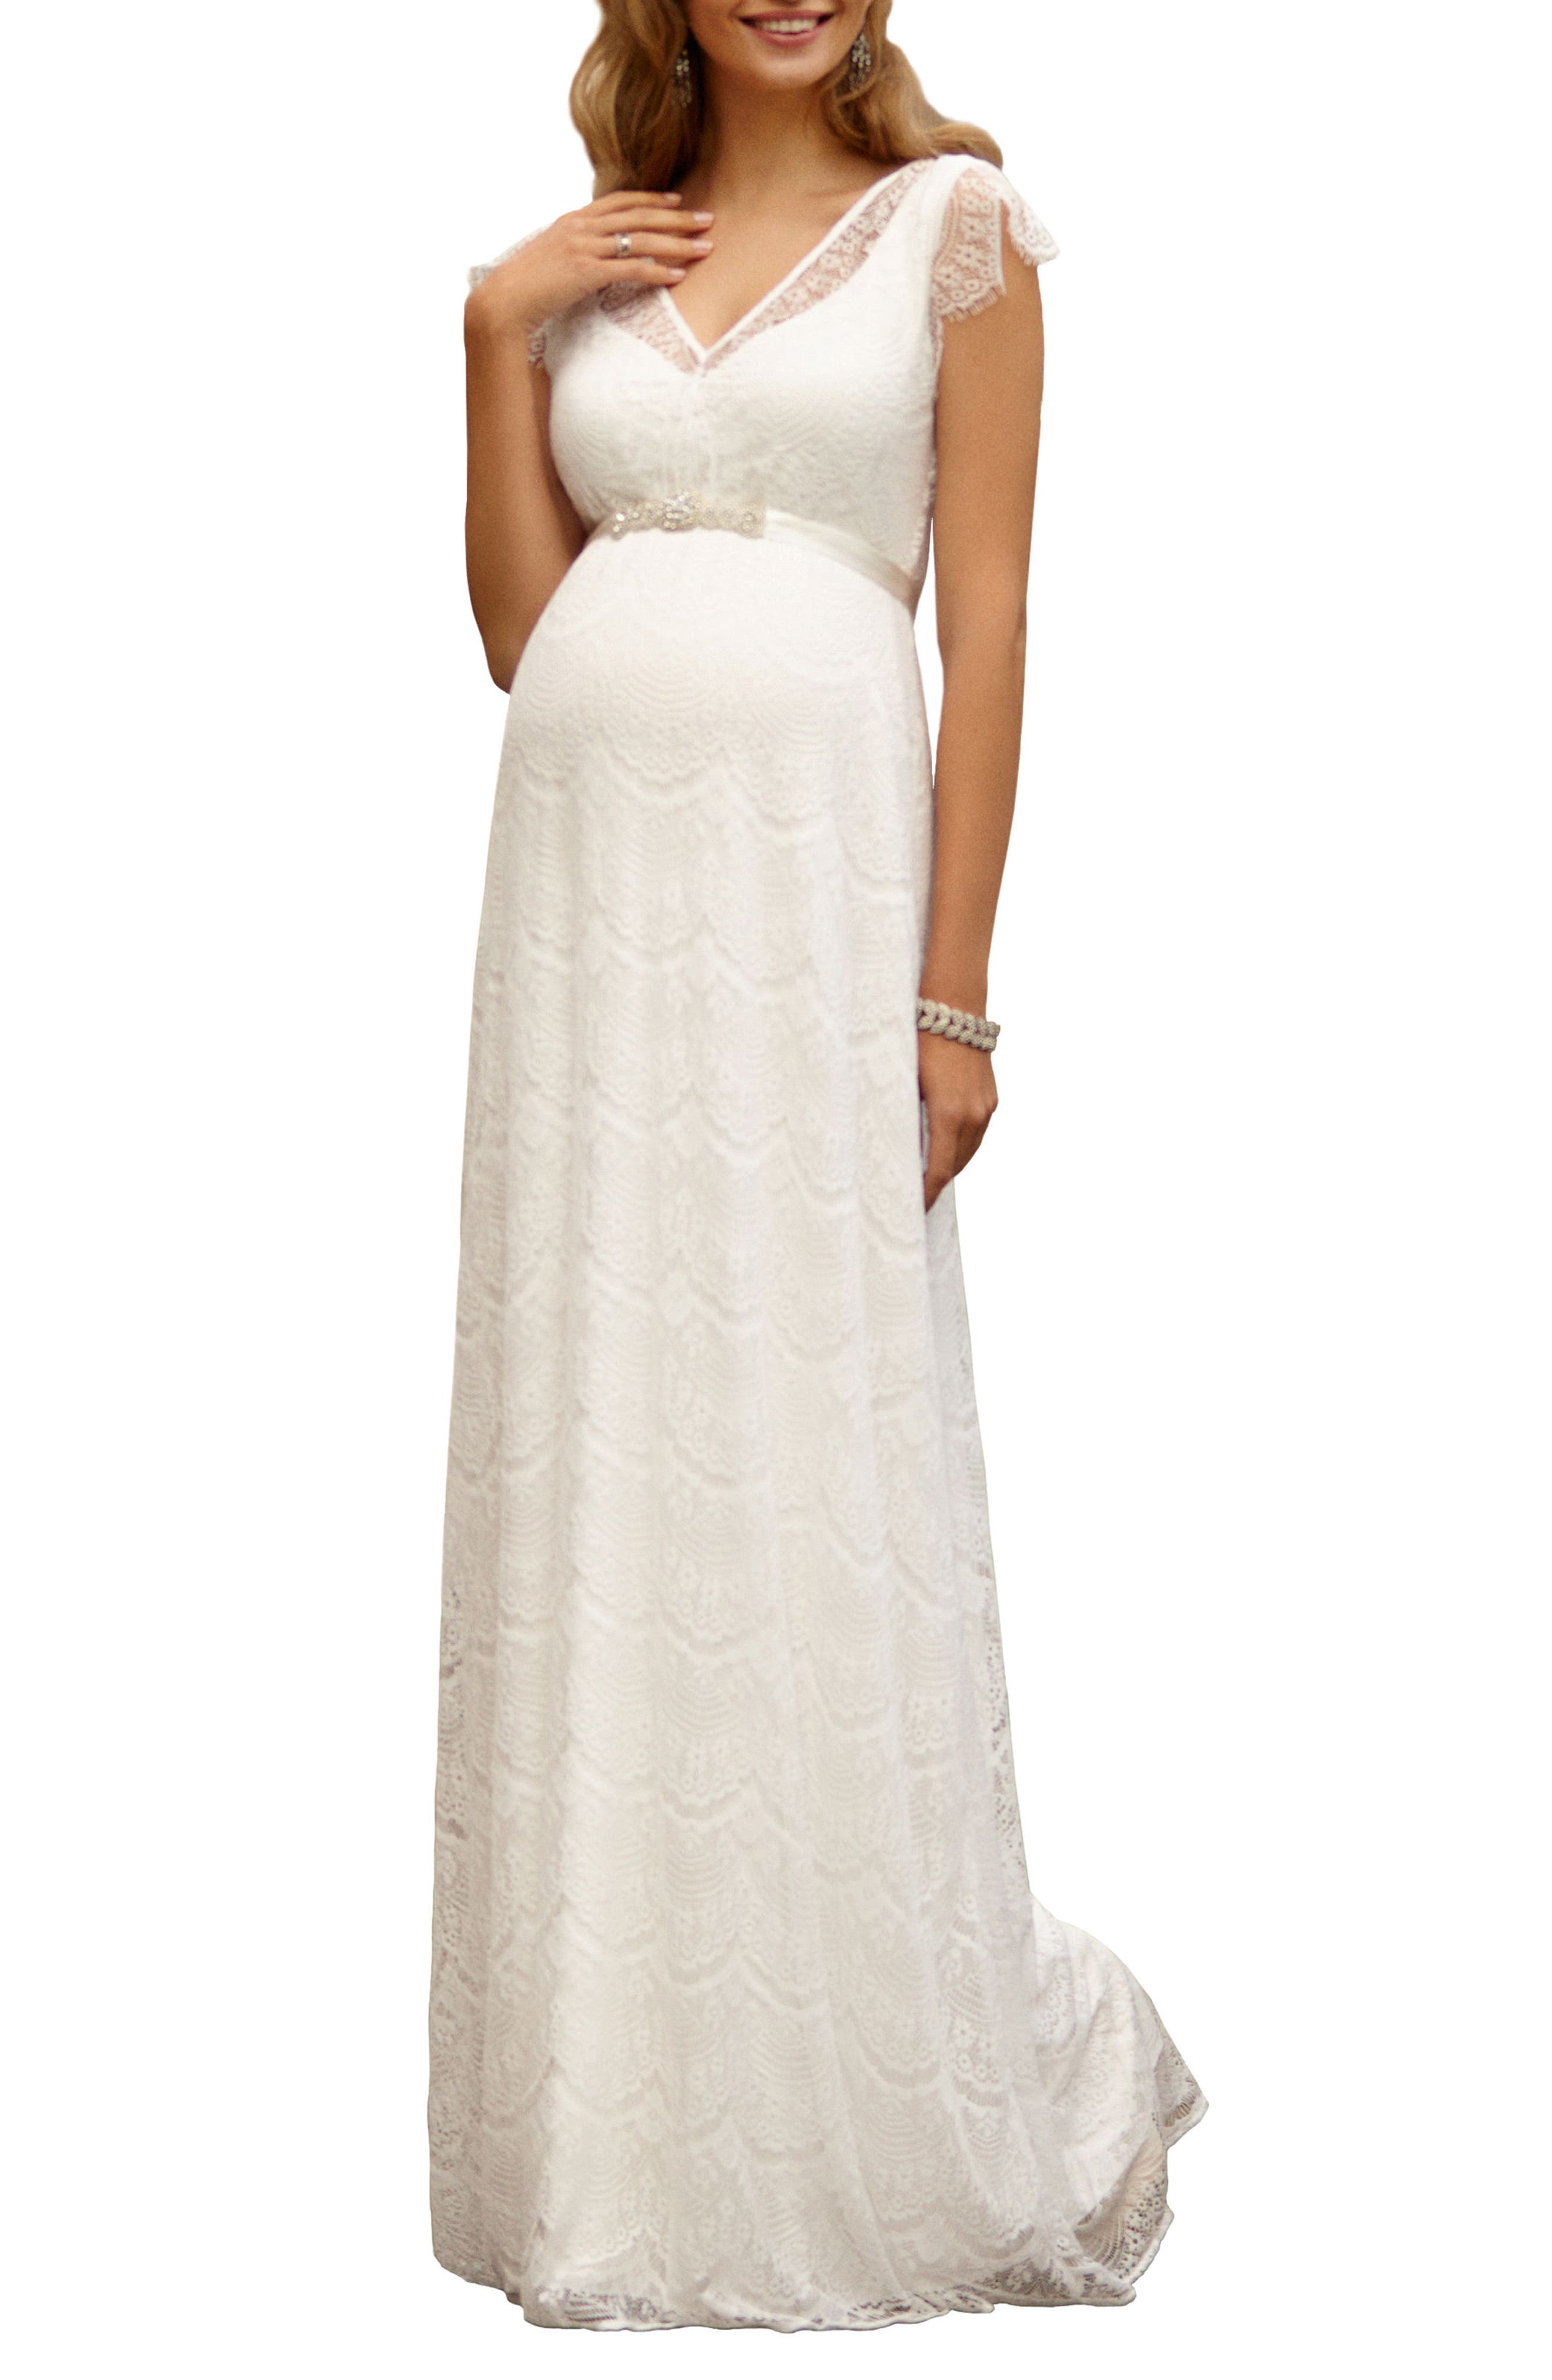 Kristin Long Lace Maternity Gown,                         Main,                         color, IVORY